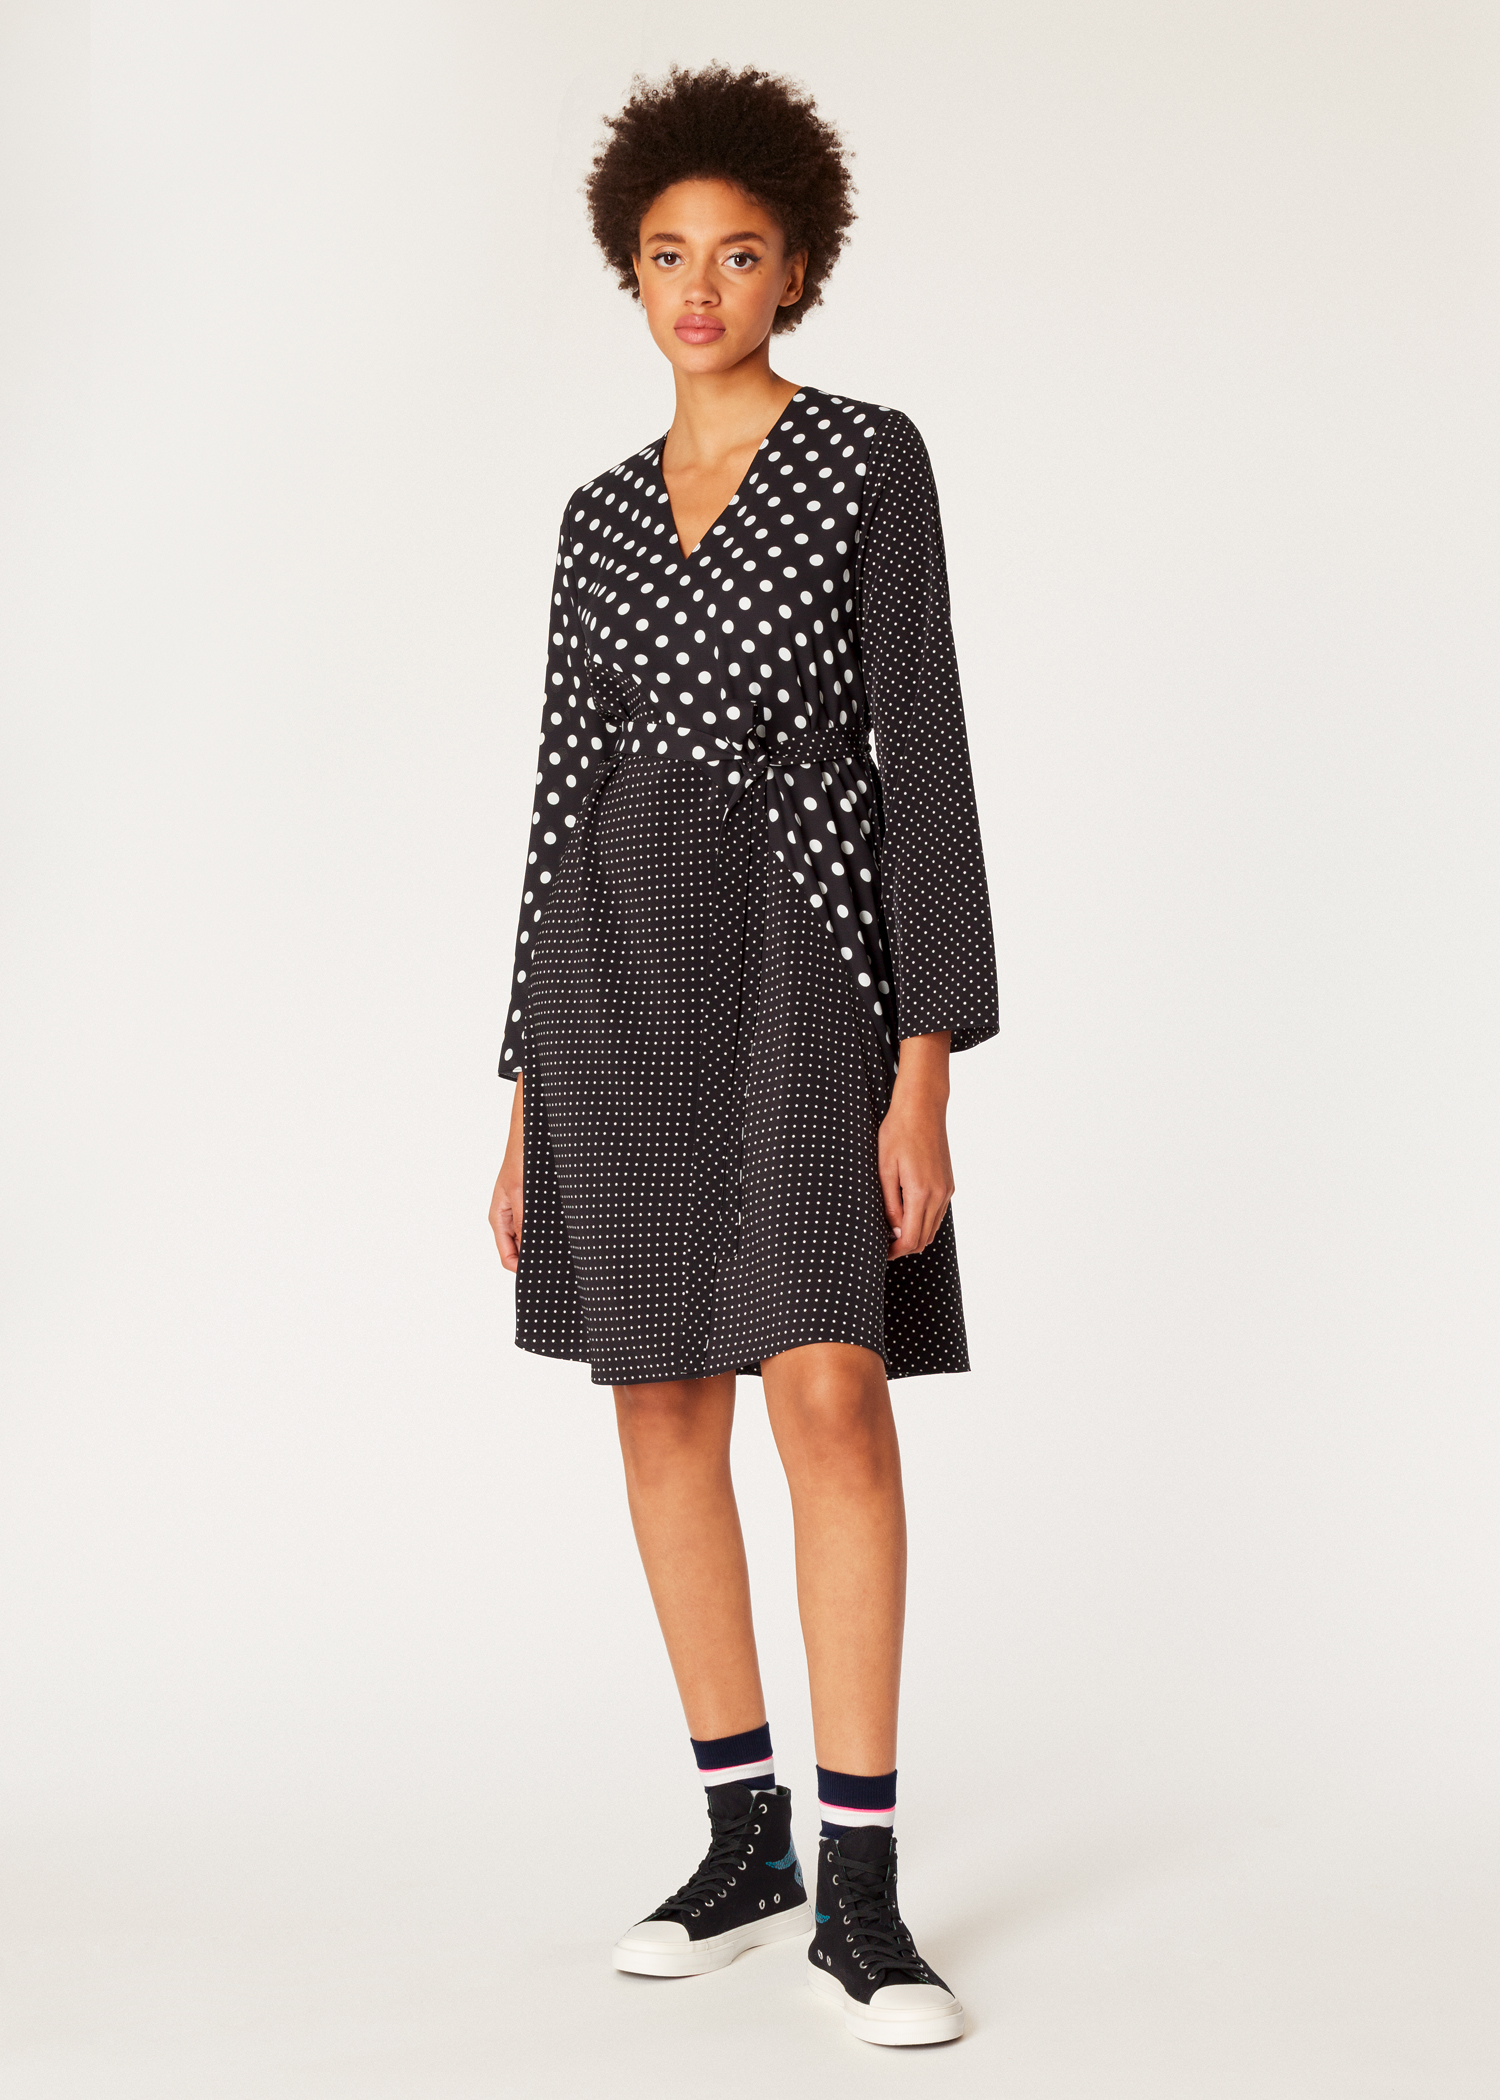 5c7efeea9 Model front view - Women s Black And White Polka Dot V-Neck Shirt Dress Paul